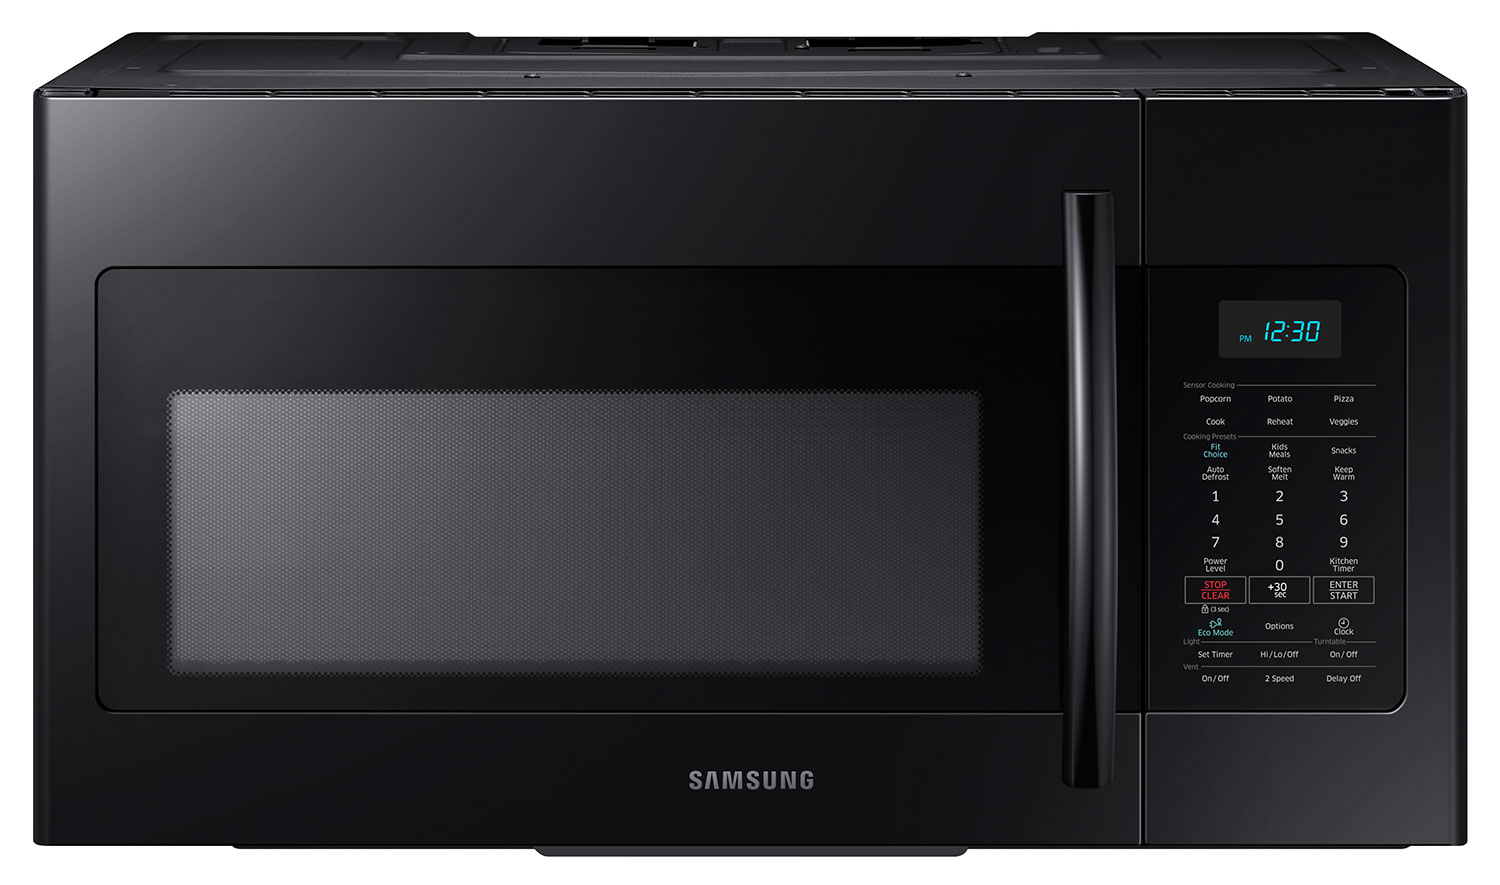 Samsung 1.7 Cu. Ft. Over-the-Range Microwave – Black